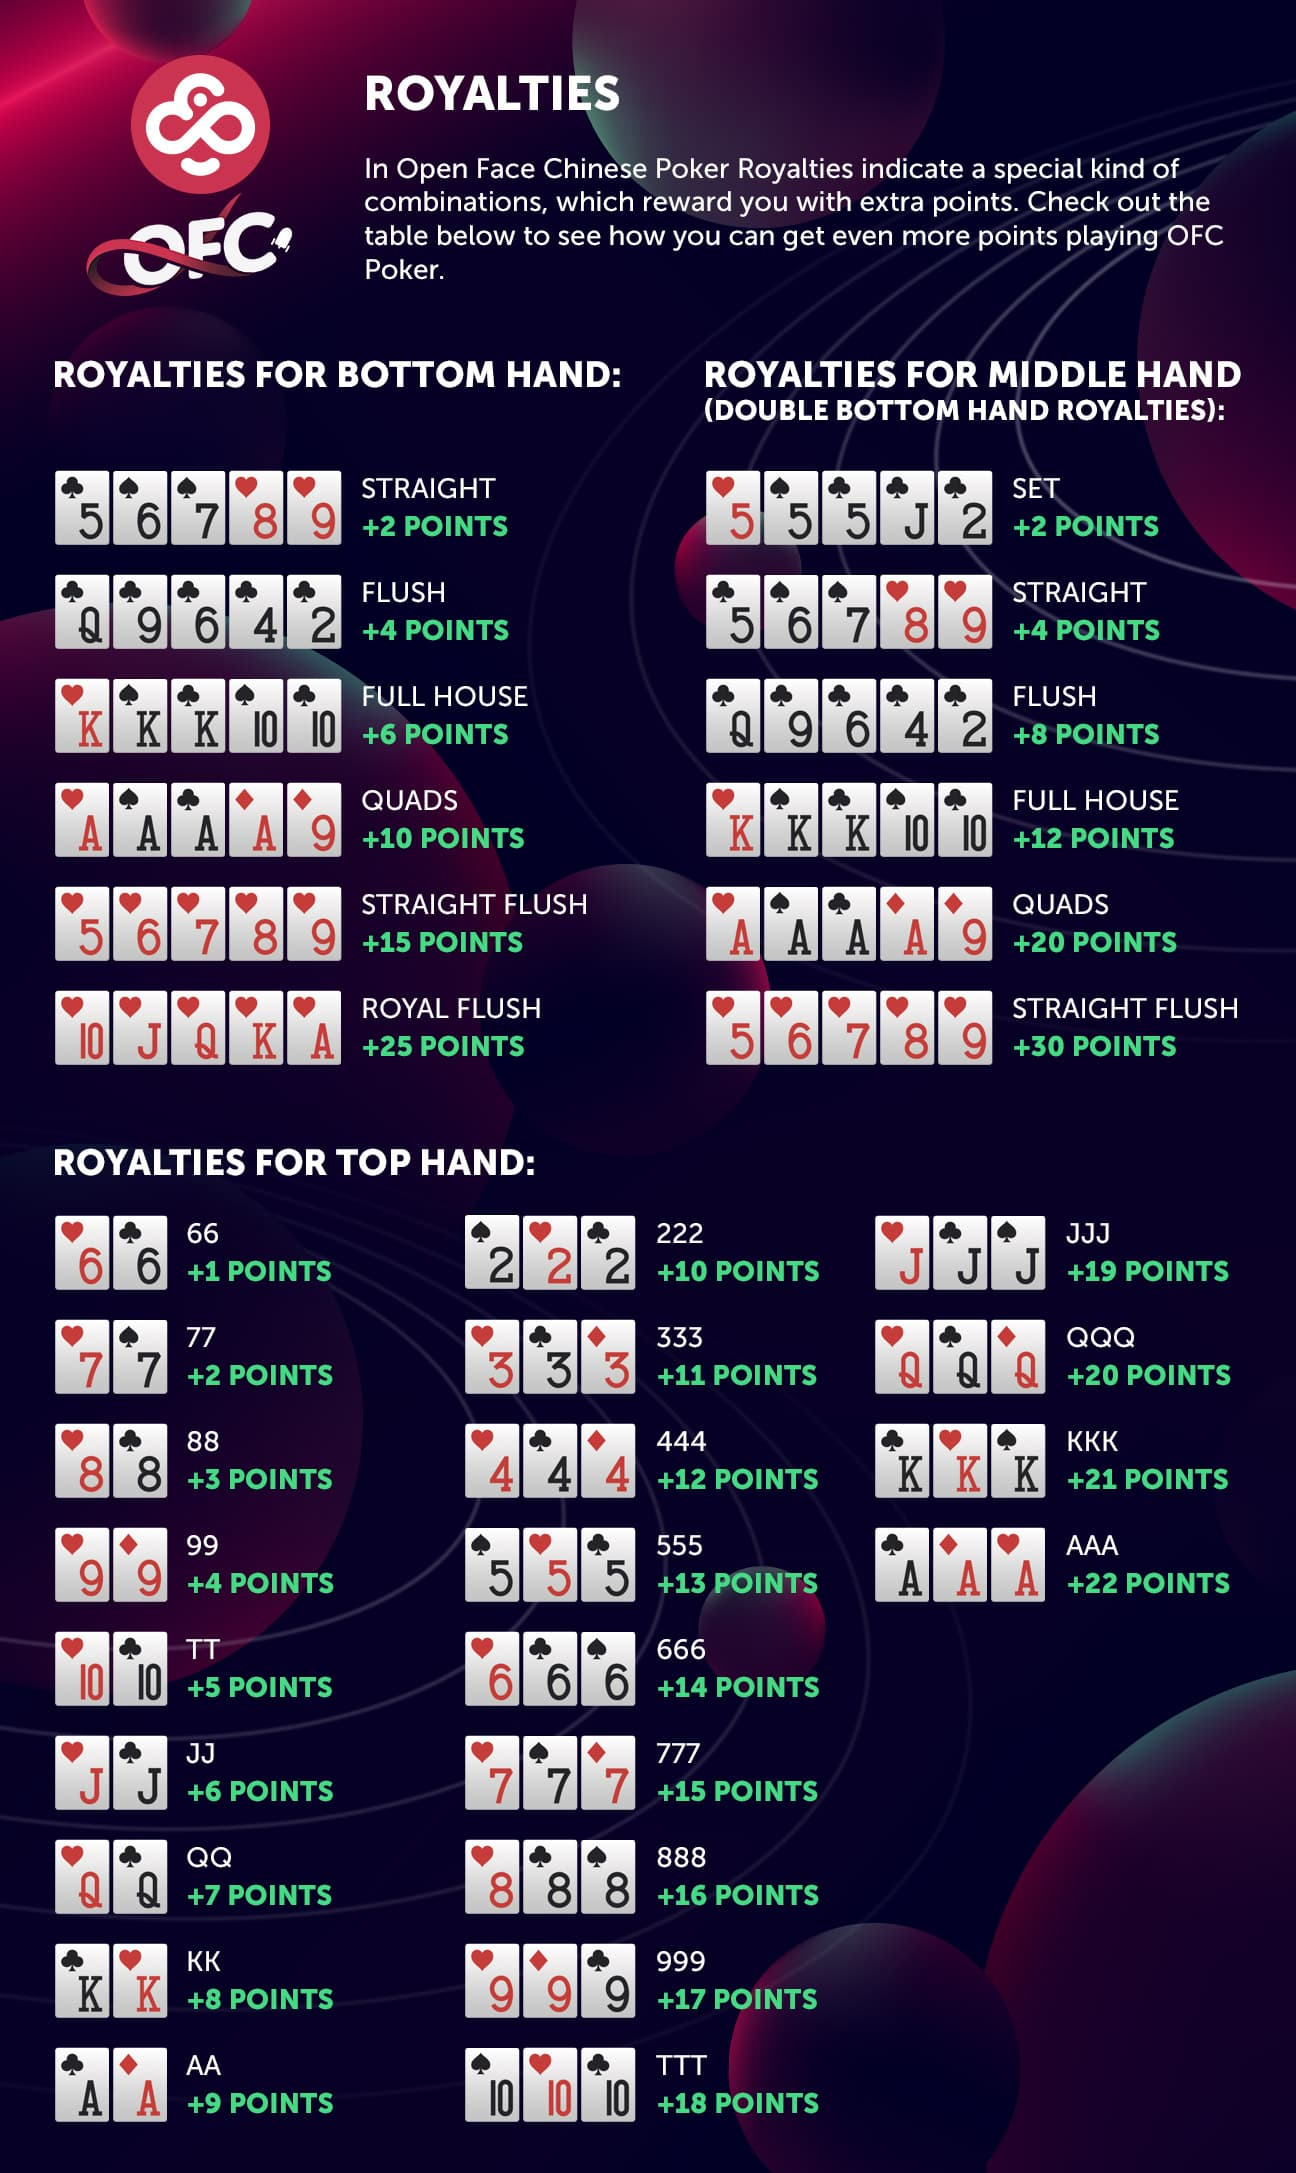 Open face chinese poker fantasyland rules 2020